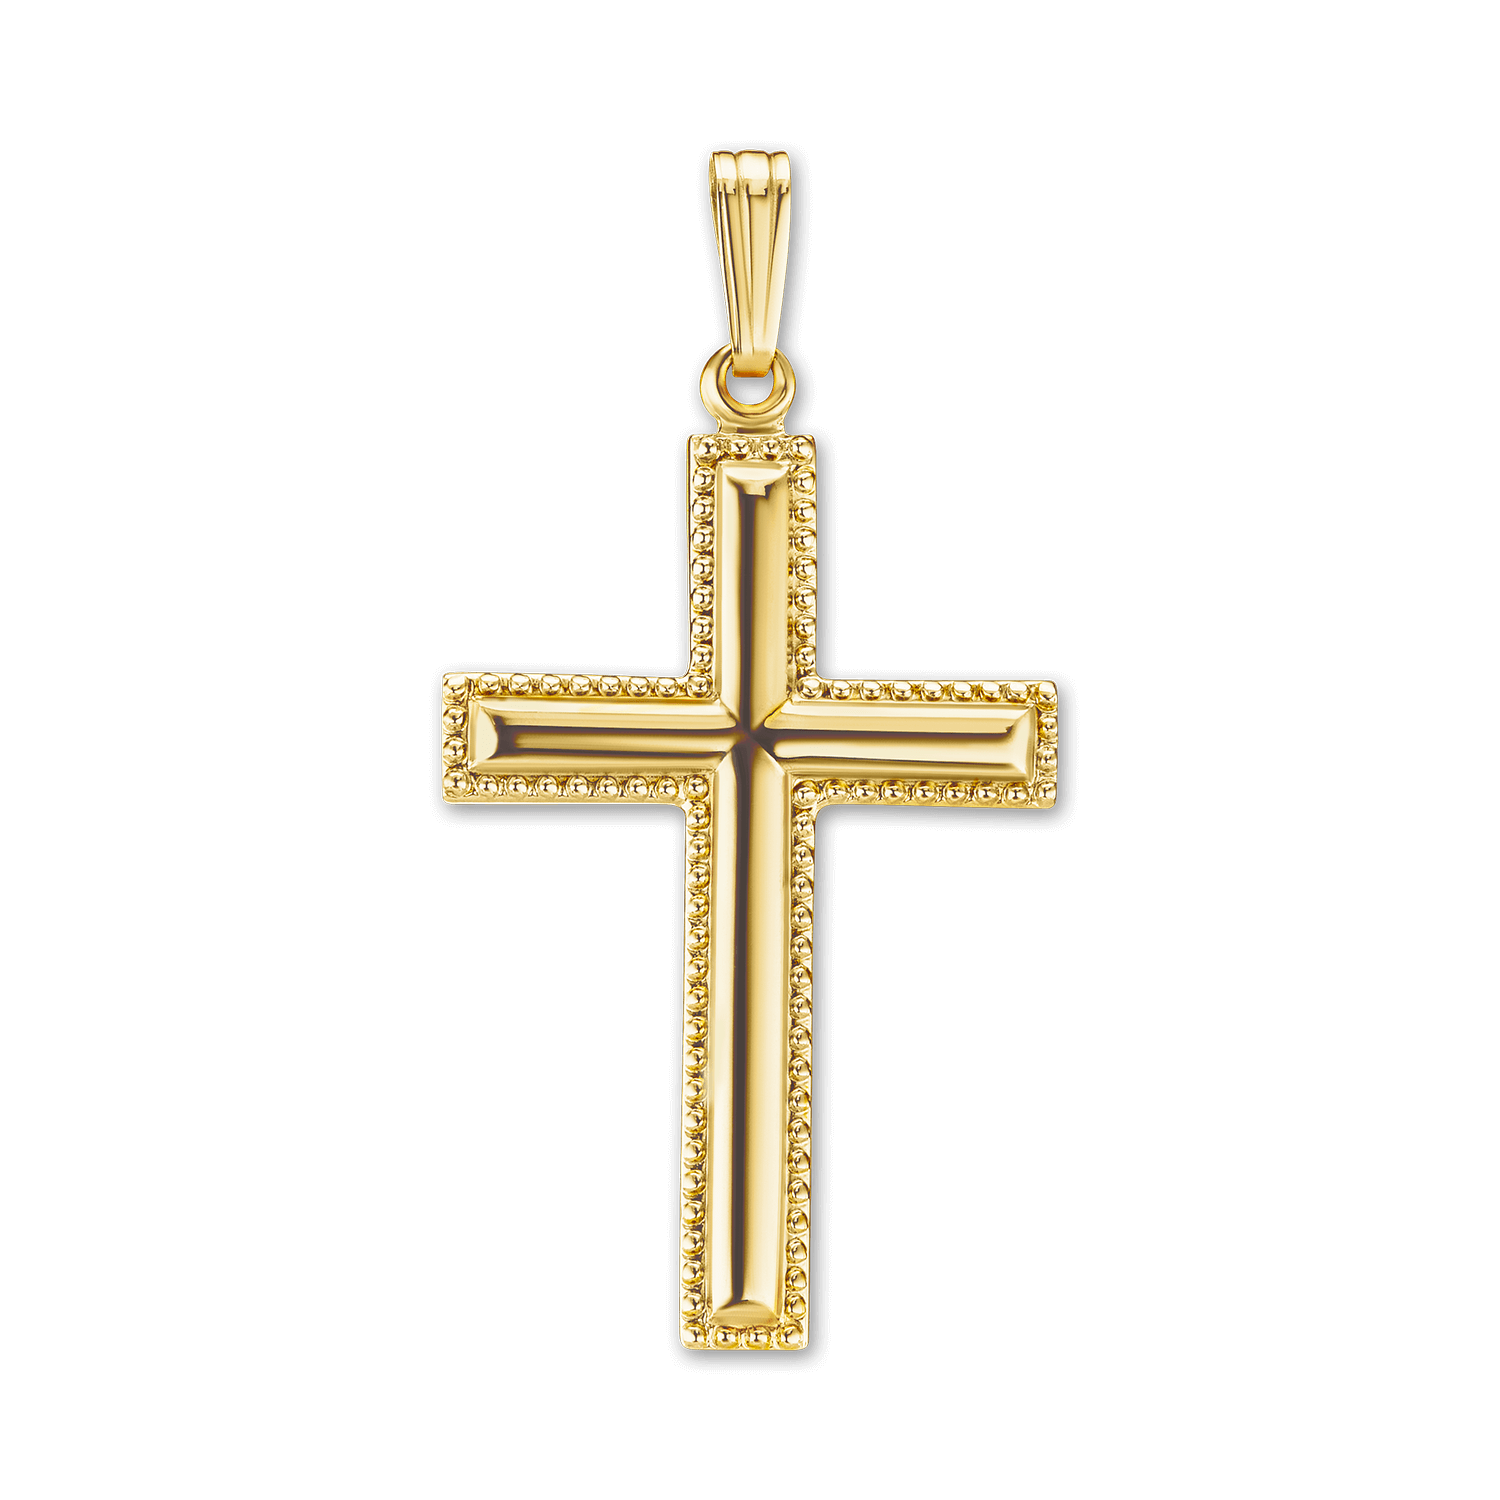 14K Gold Fancy Cross with Beaded Edge (41 x 21mm)